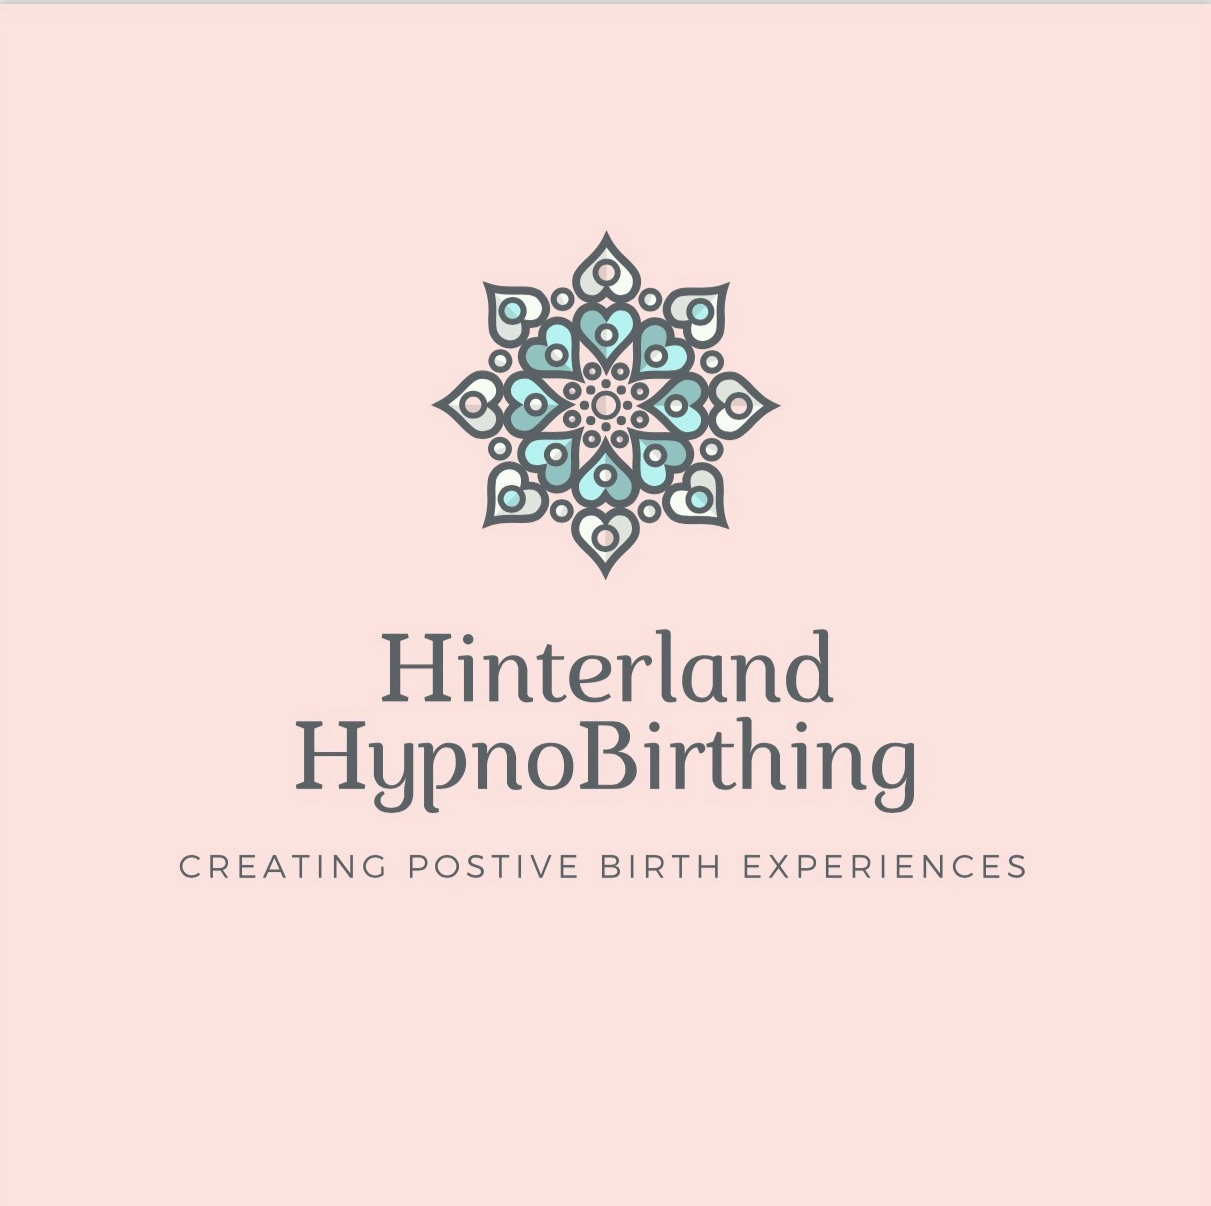 HypnoBirthing 5 week Private Course